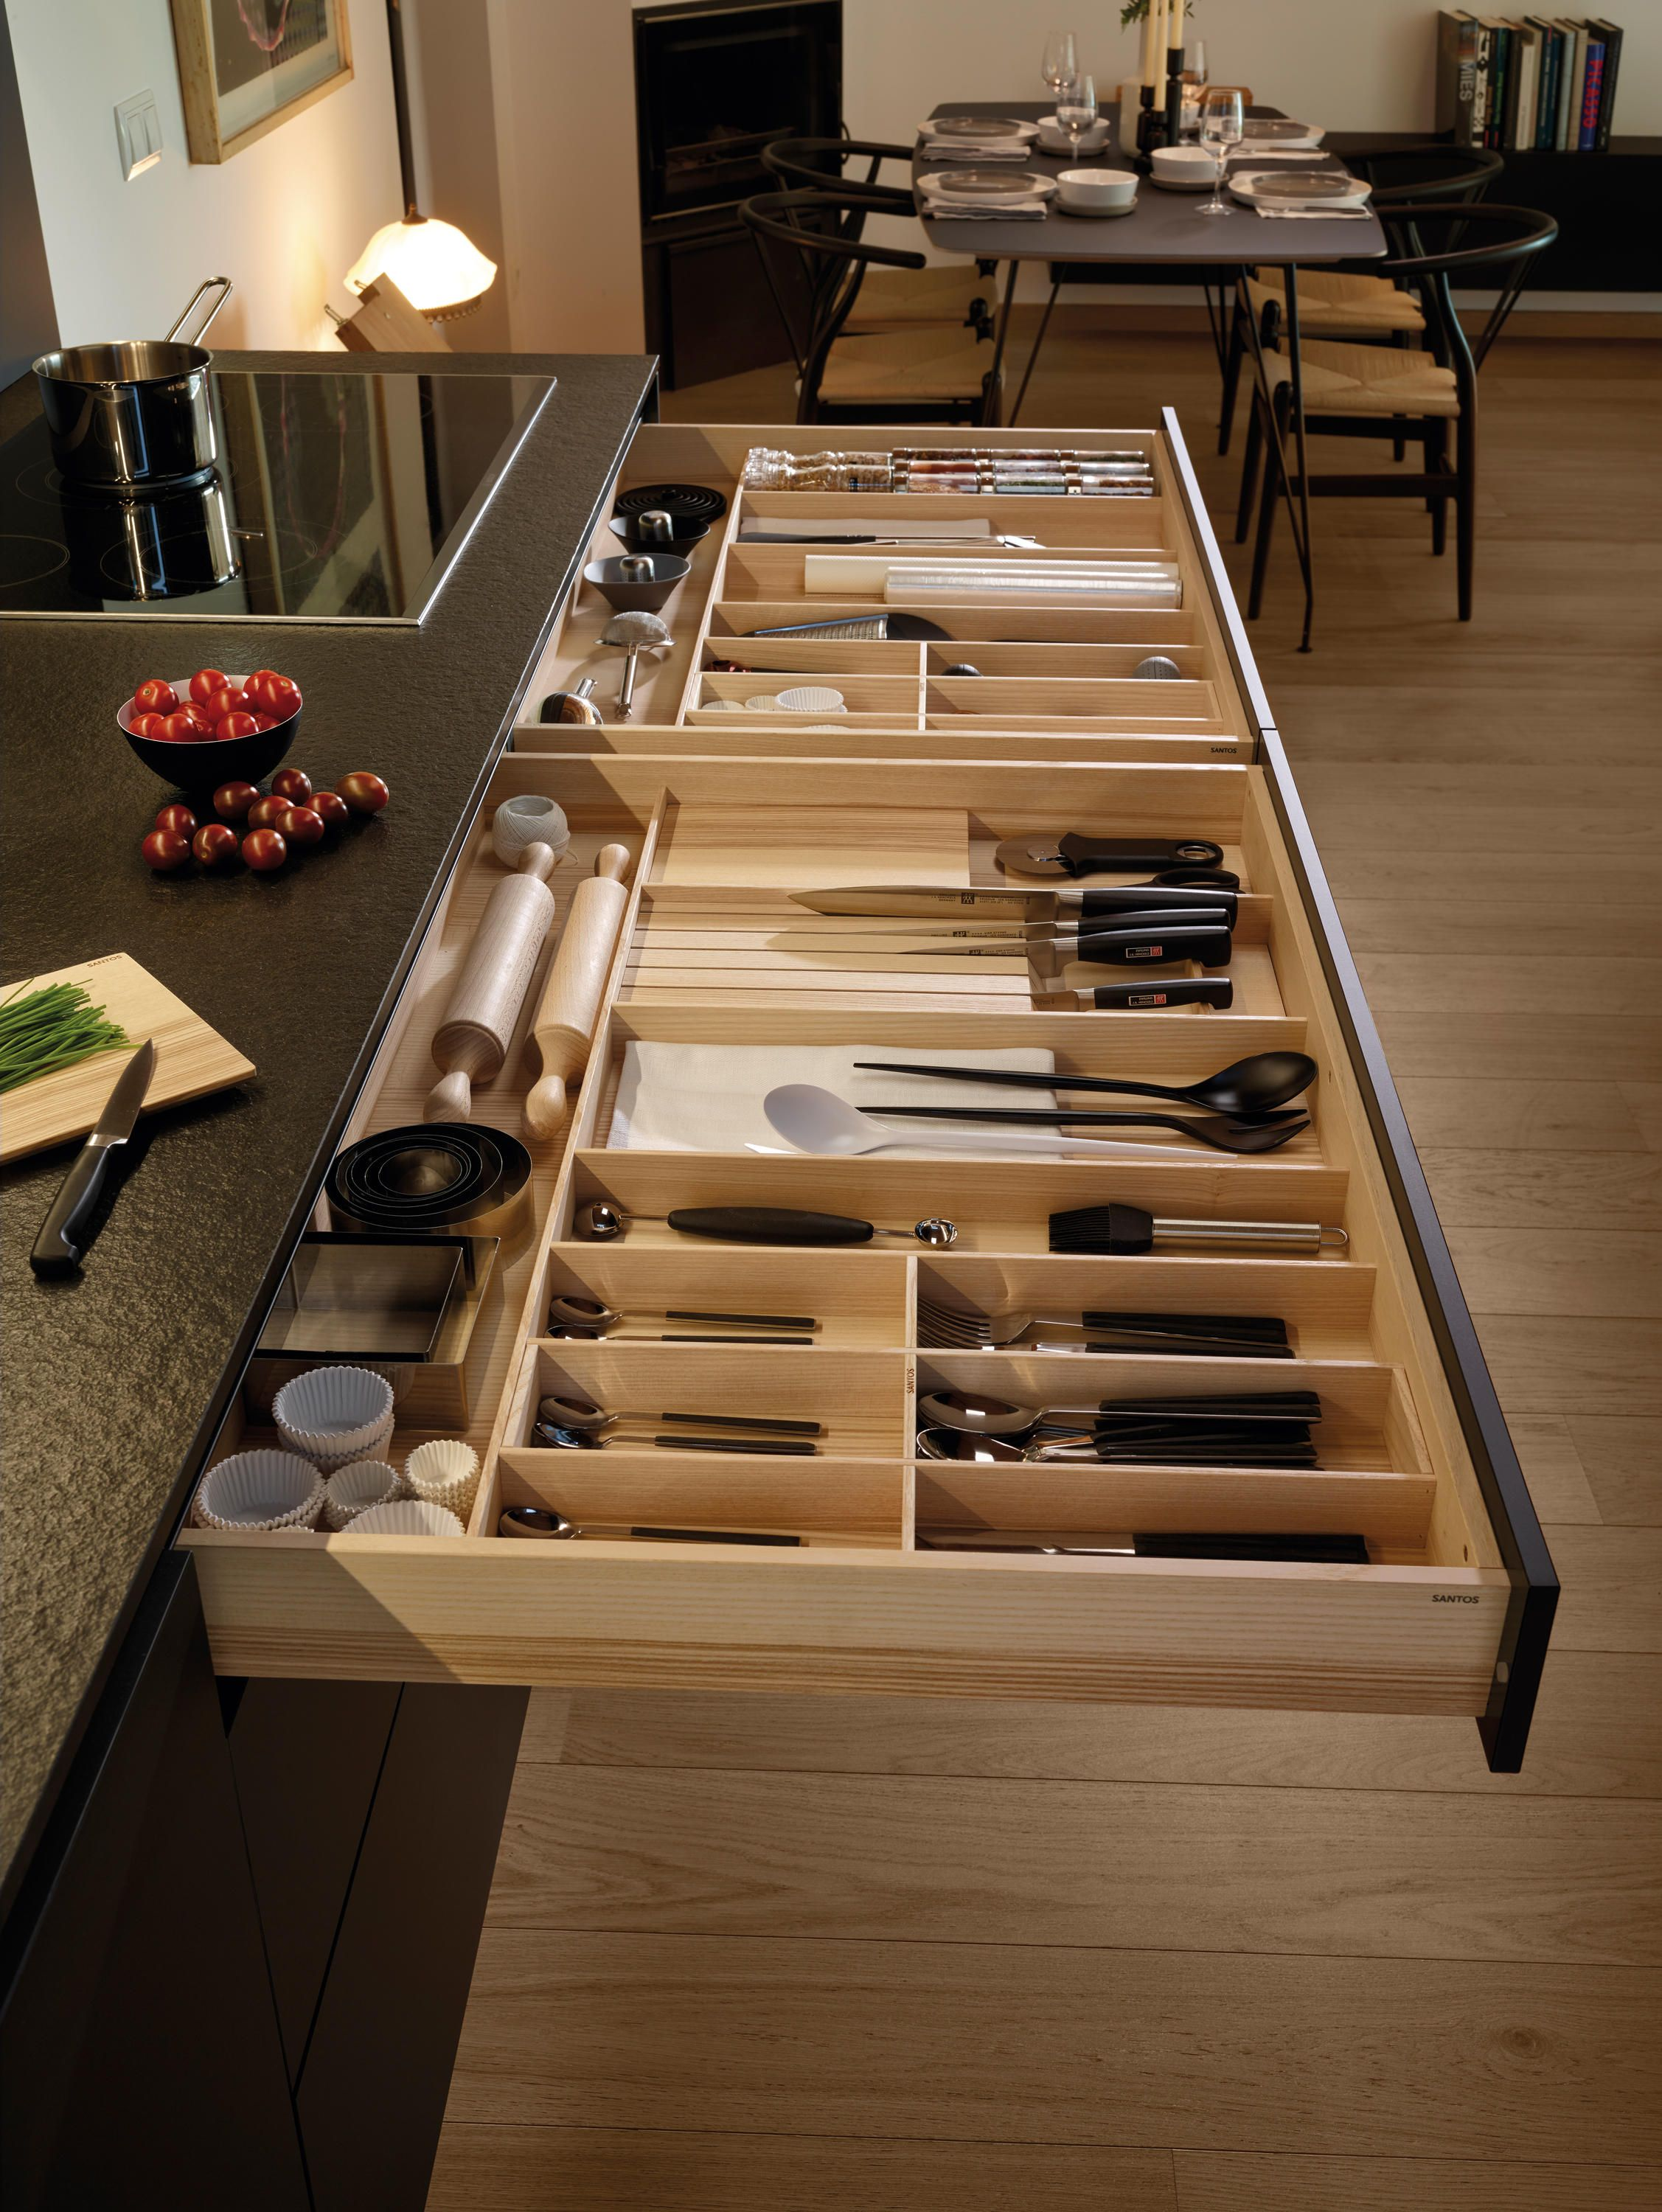 LINE Silk Three levels of drawers   Architonic